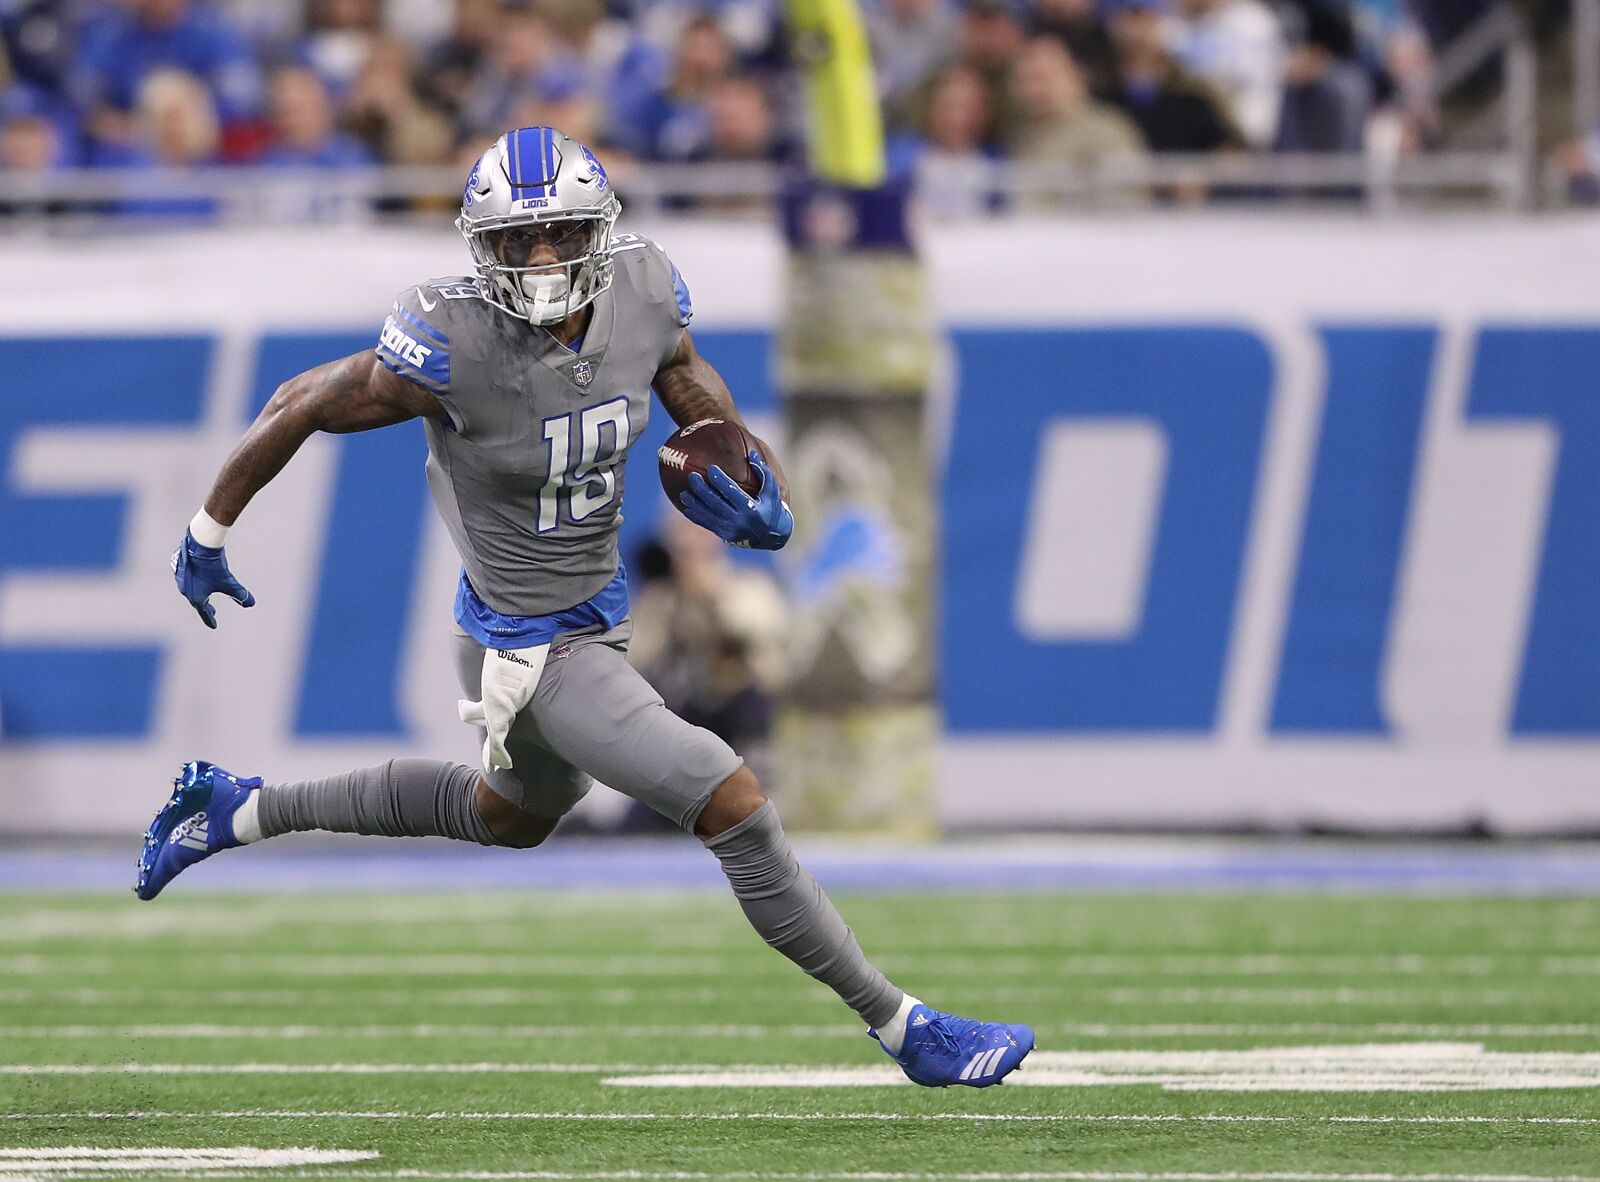 Detroit Lions: What to expect from Kenny Golladay in 2019